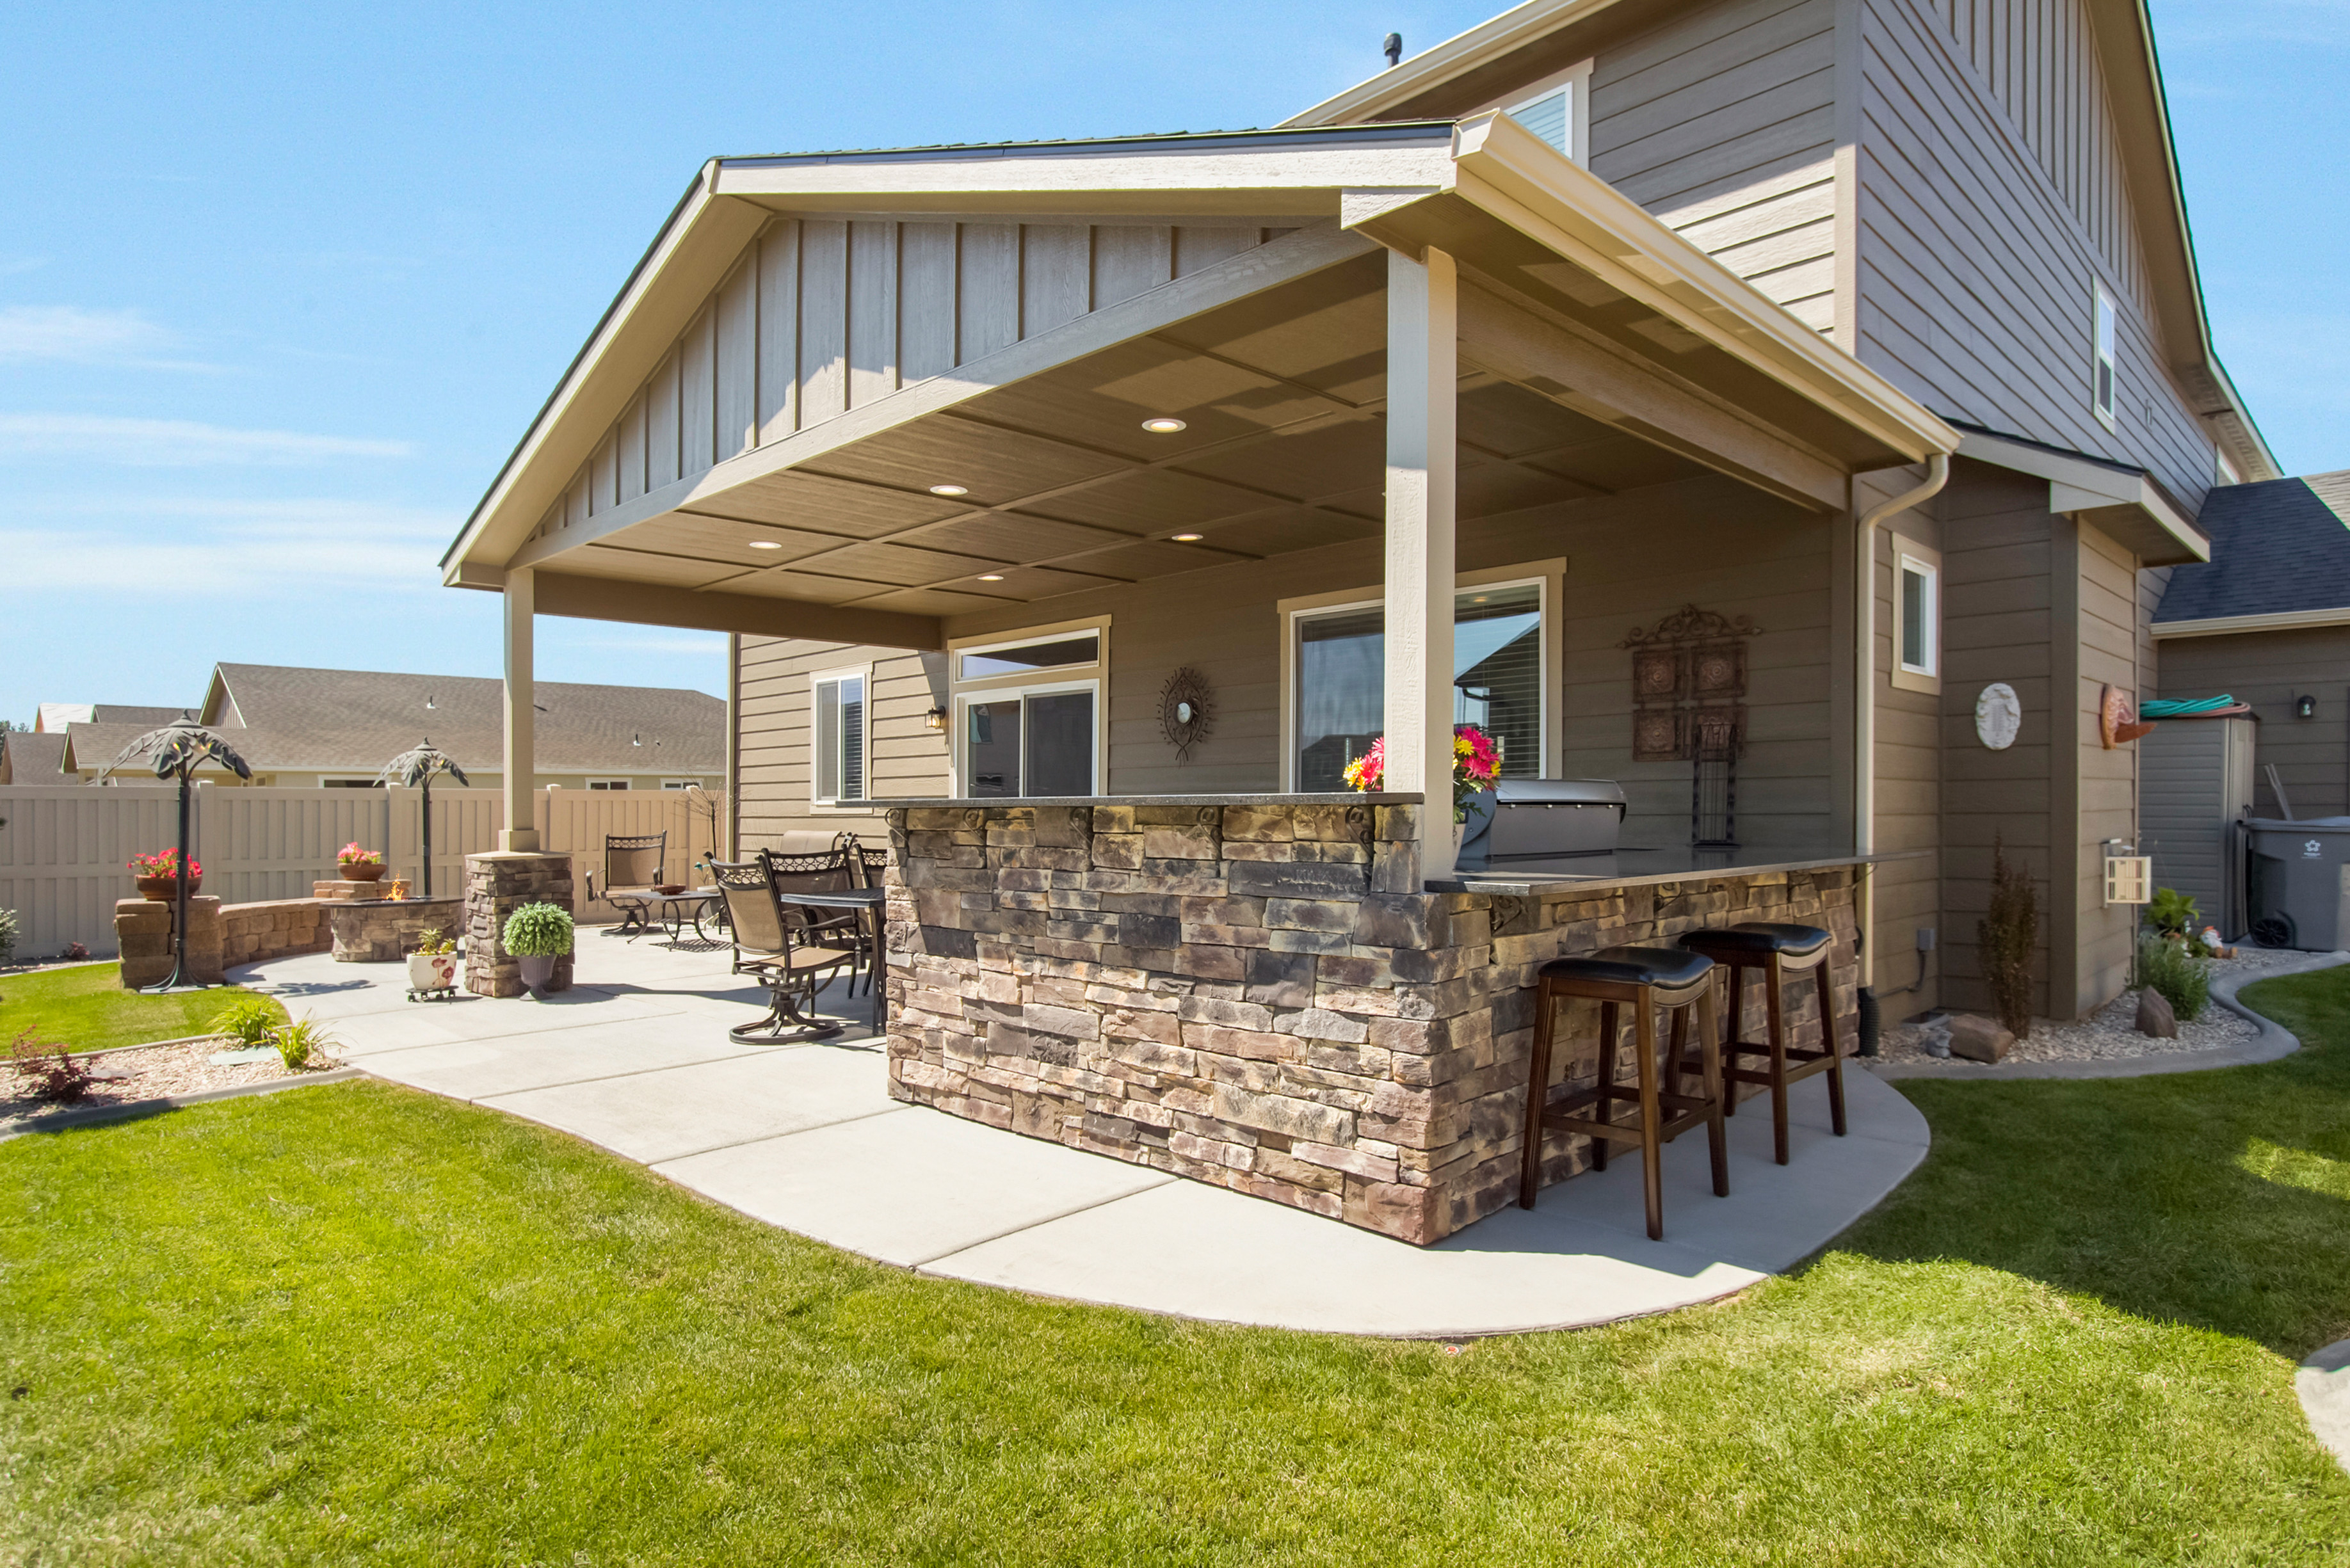 Backyard Ideas For Your New Home Hayden Homes Blog in 12 Some of the Coolest Designs of How to Build New Backyard Ideas